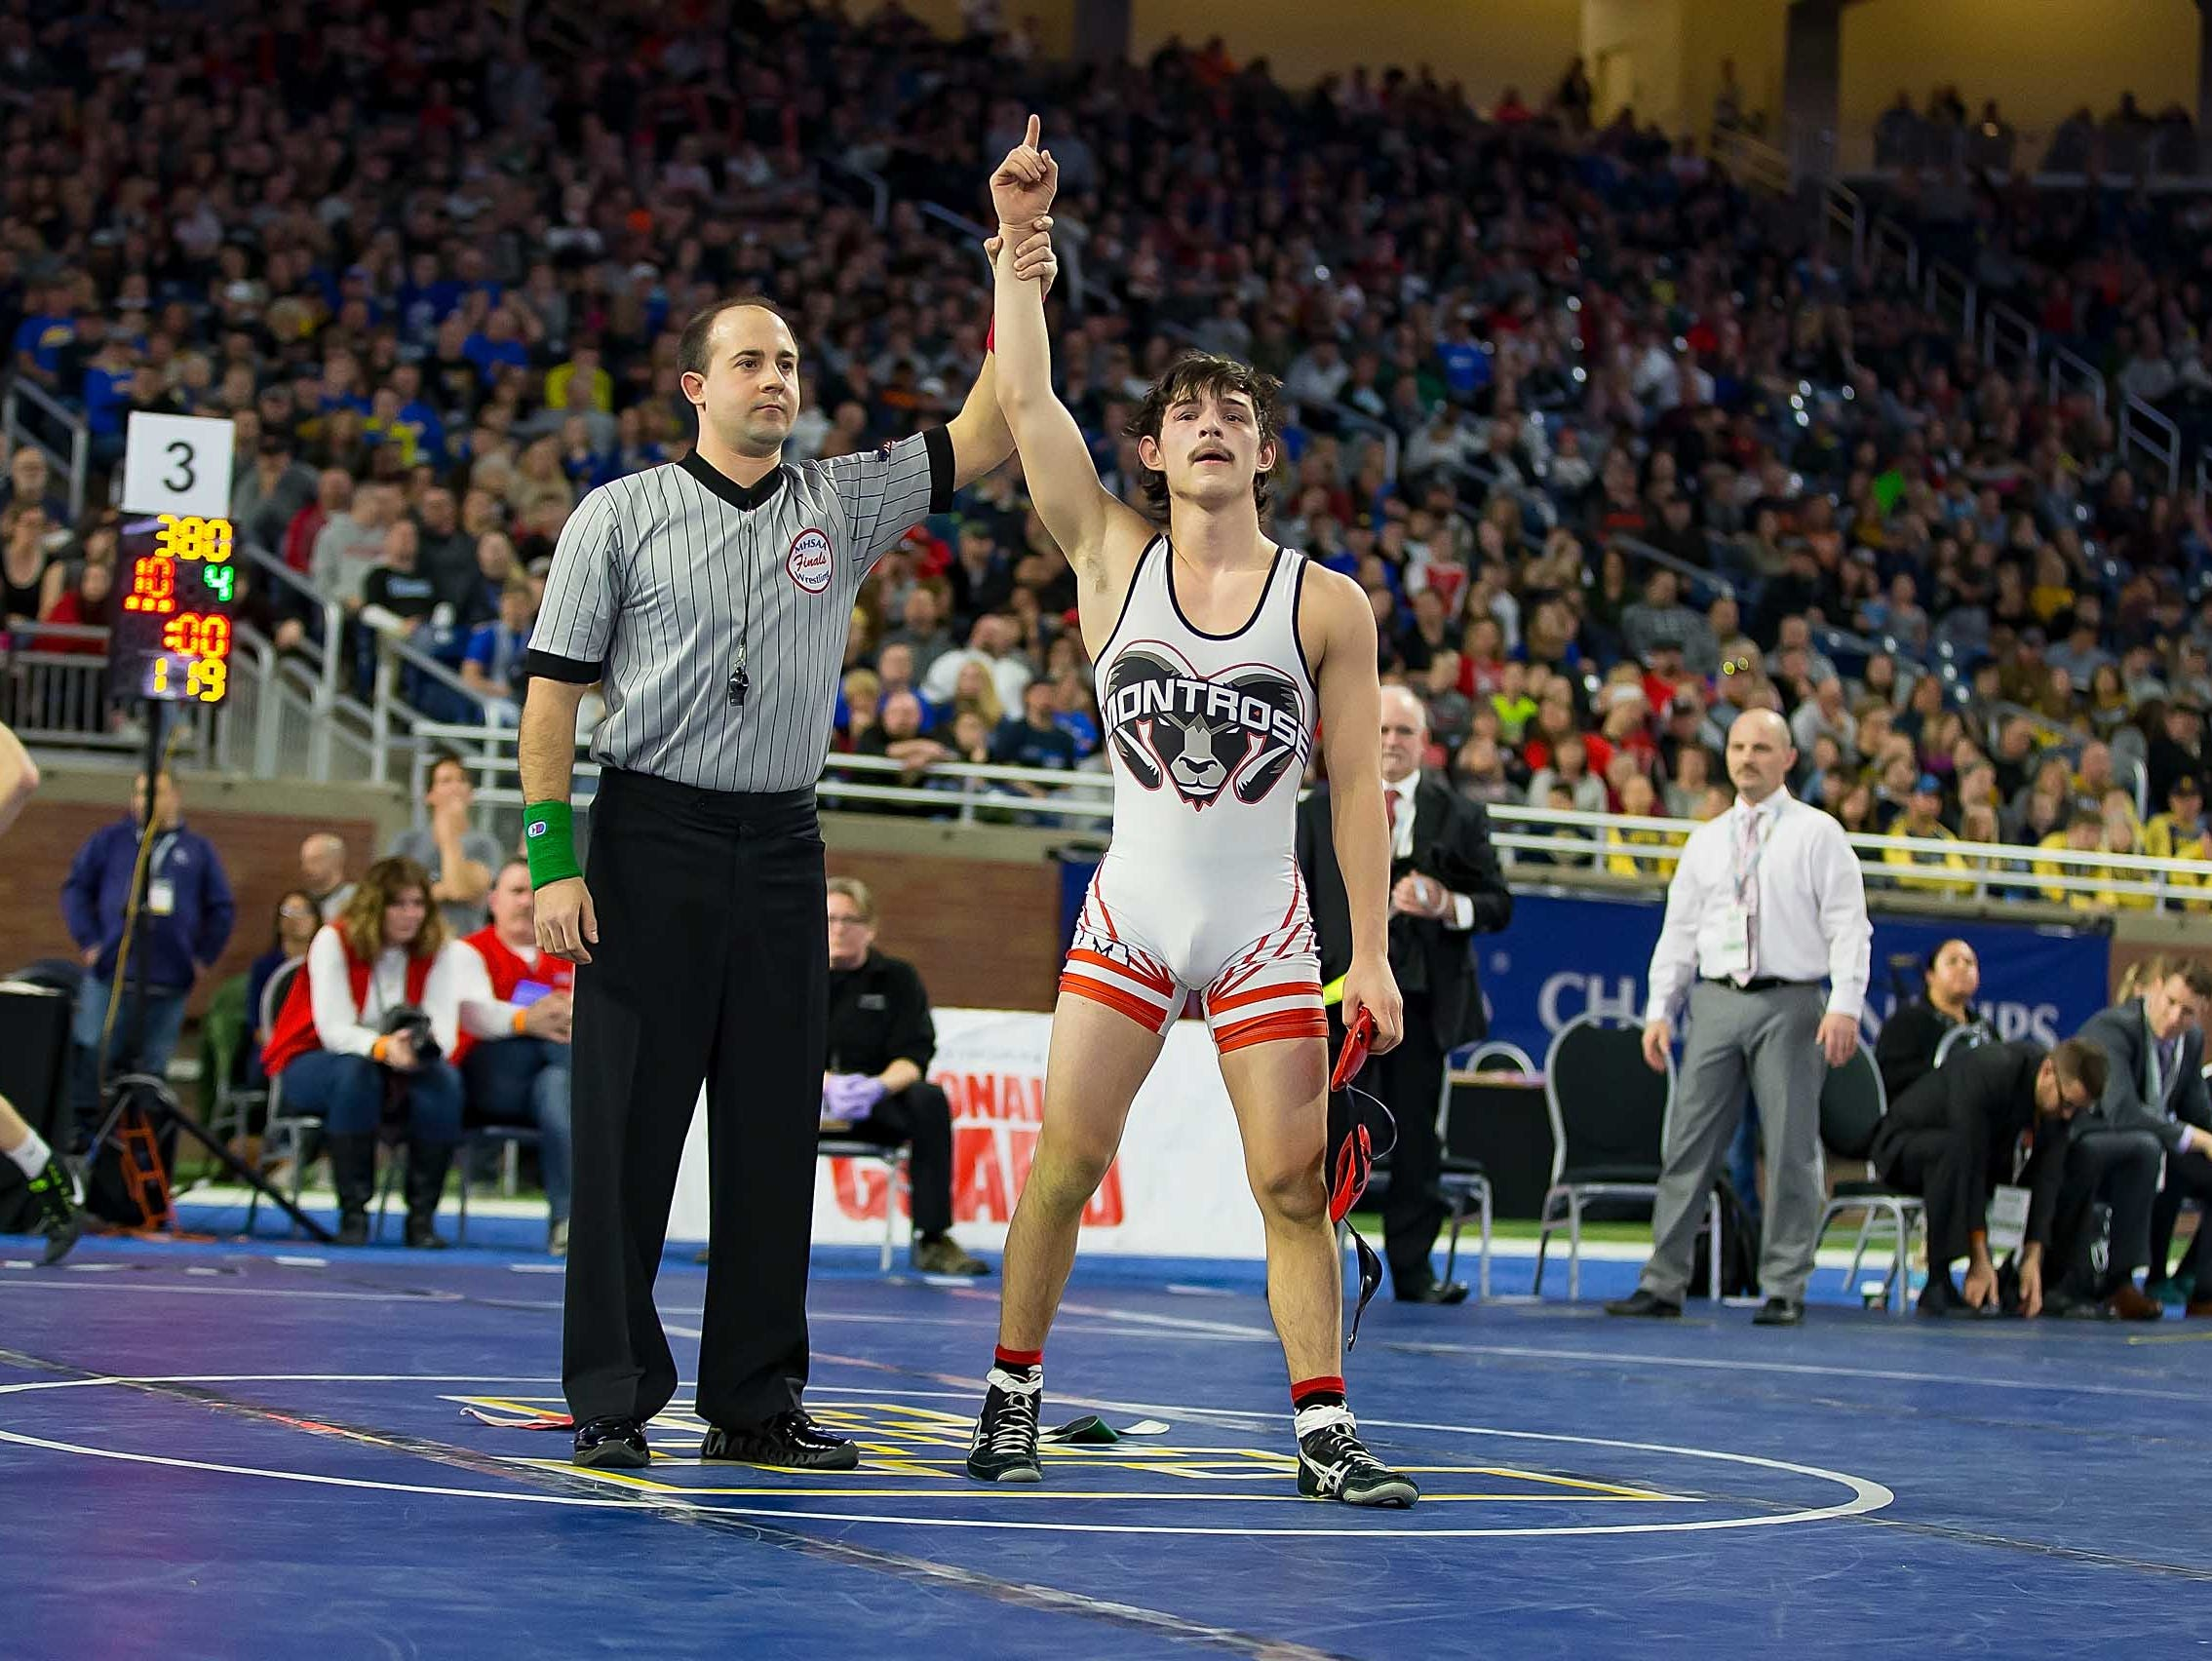 Jake Elasivich of Montrose raises his arm in victory after he defeated Brendan Connelly of Yale during their 119-pound Division 3 championship match.